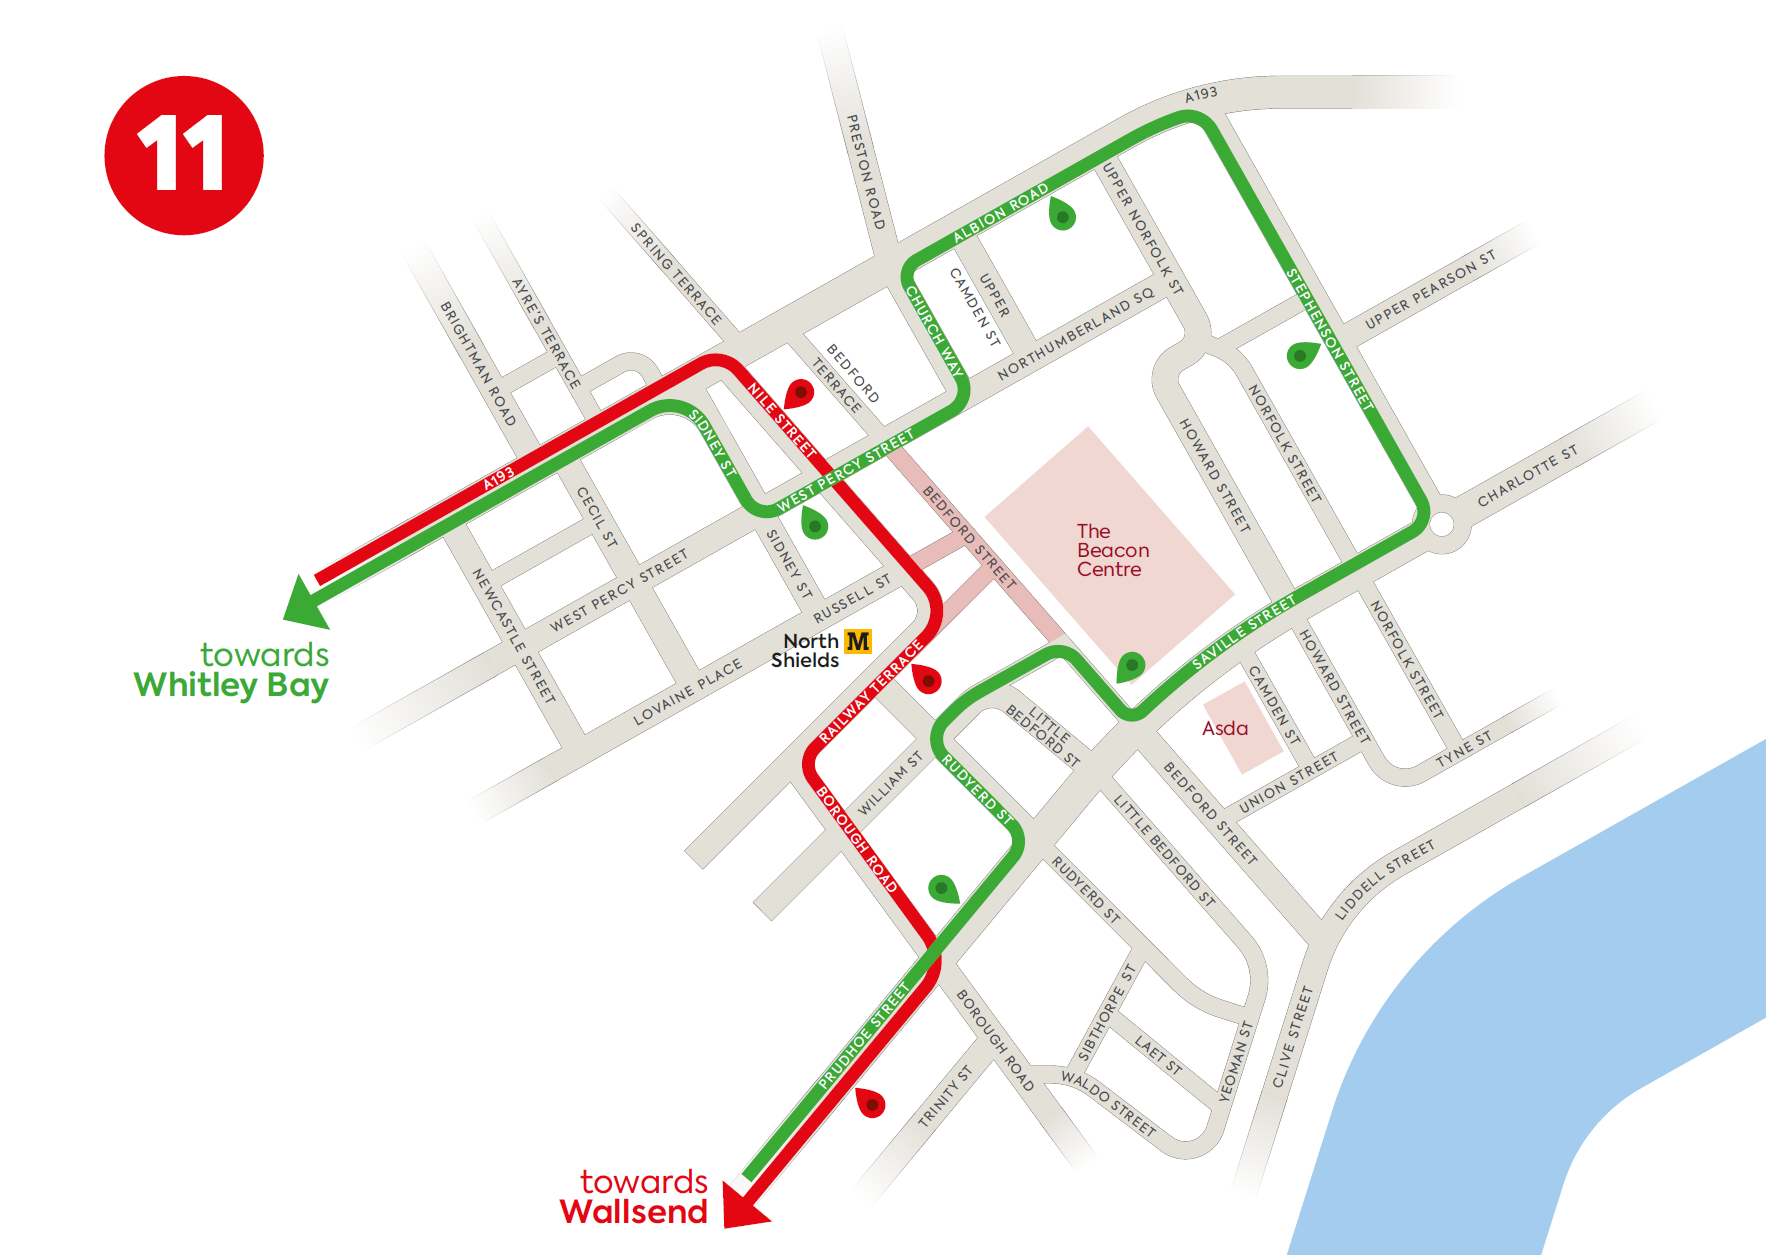 North Shields - Little Coasters 11 route change